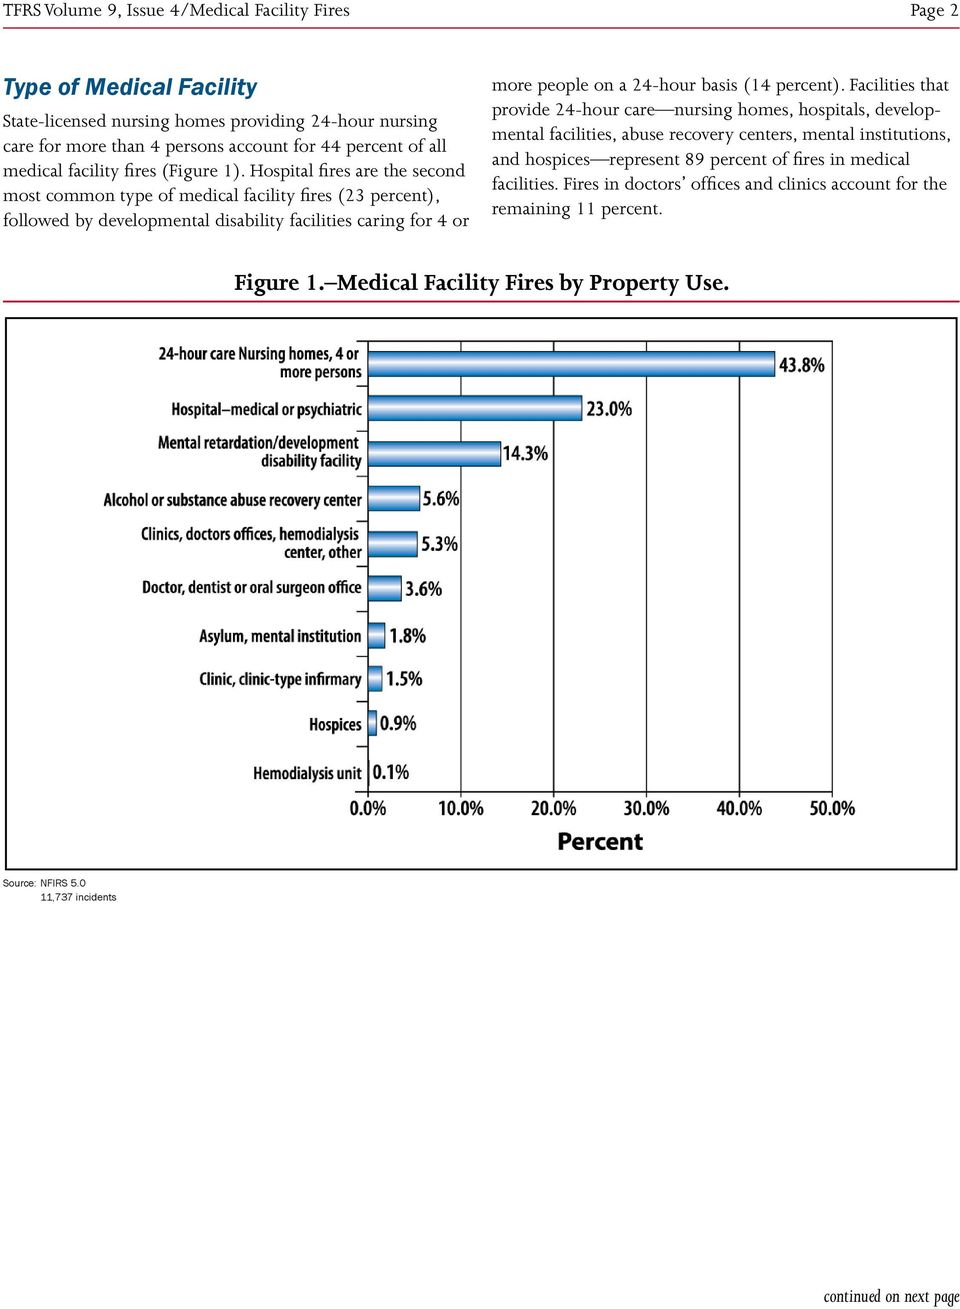 Hospital fires are the second most common type of medical facility fires (23 percent), followed by developmental disability facilities caring for 4 or more people on a 24-hour basis (14 percent).